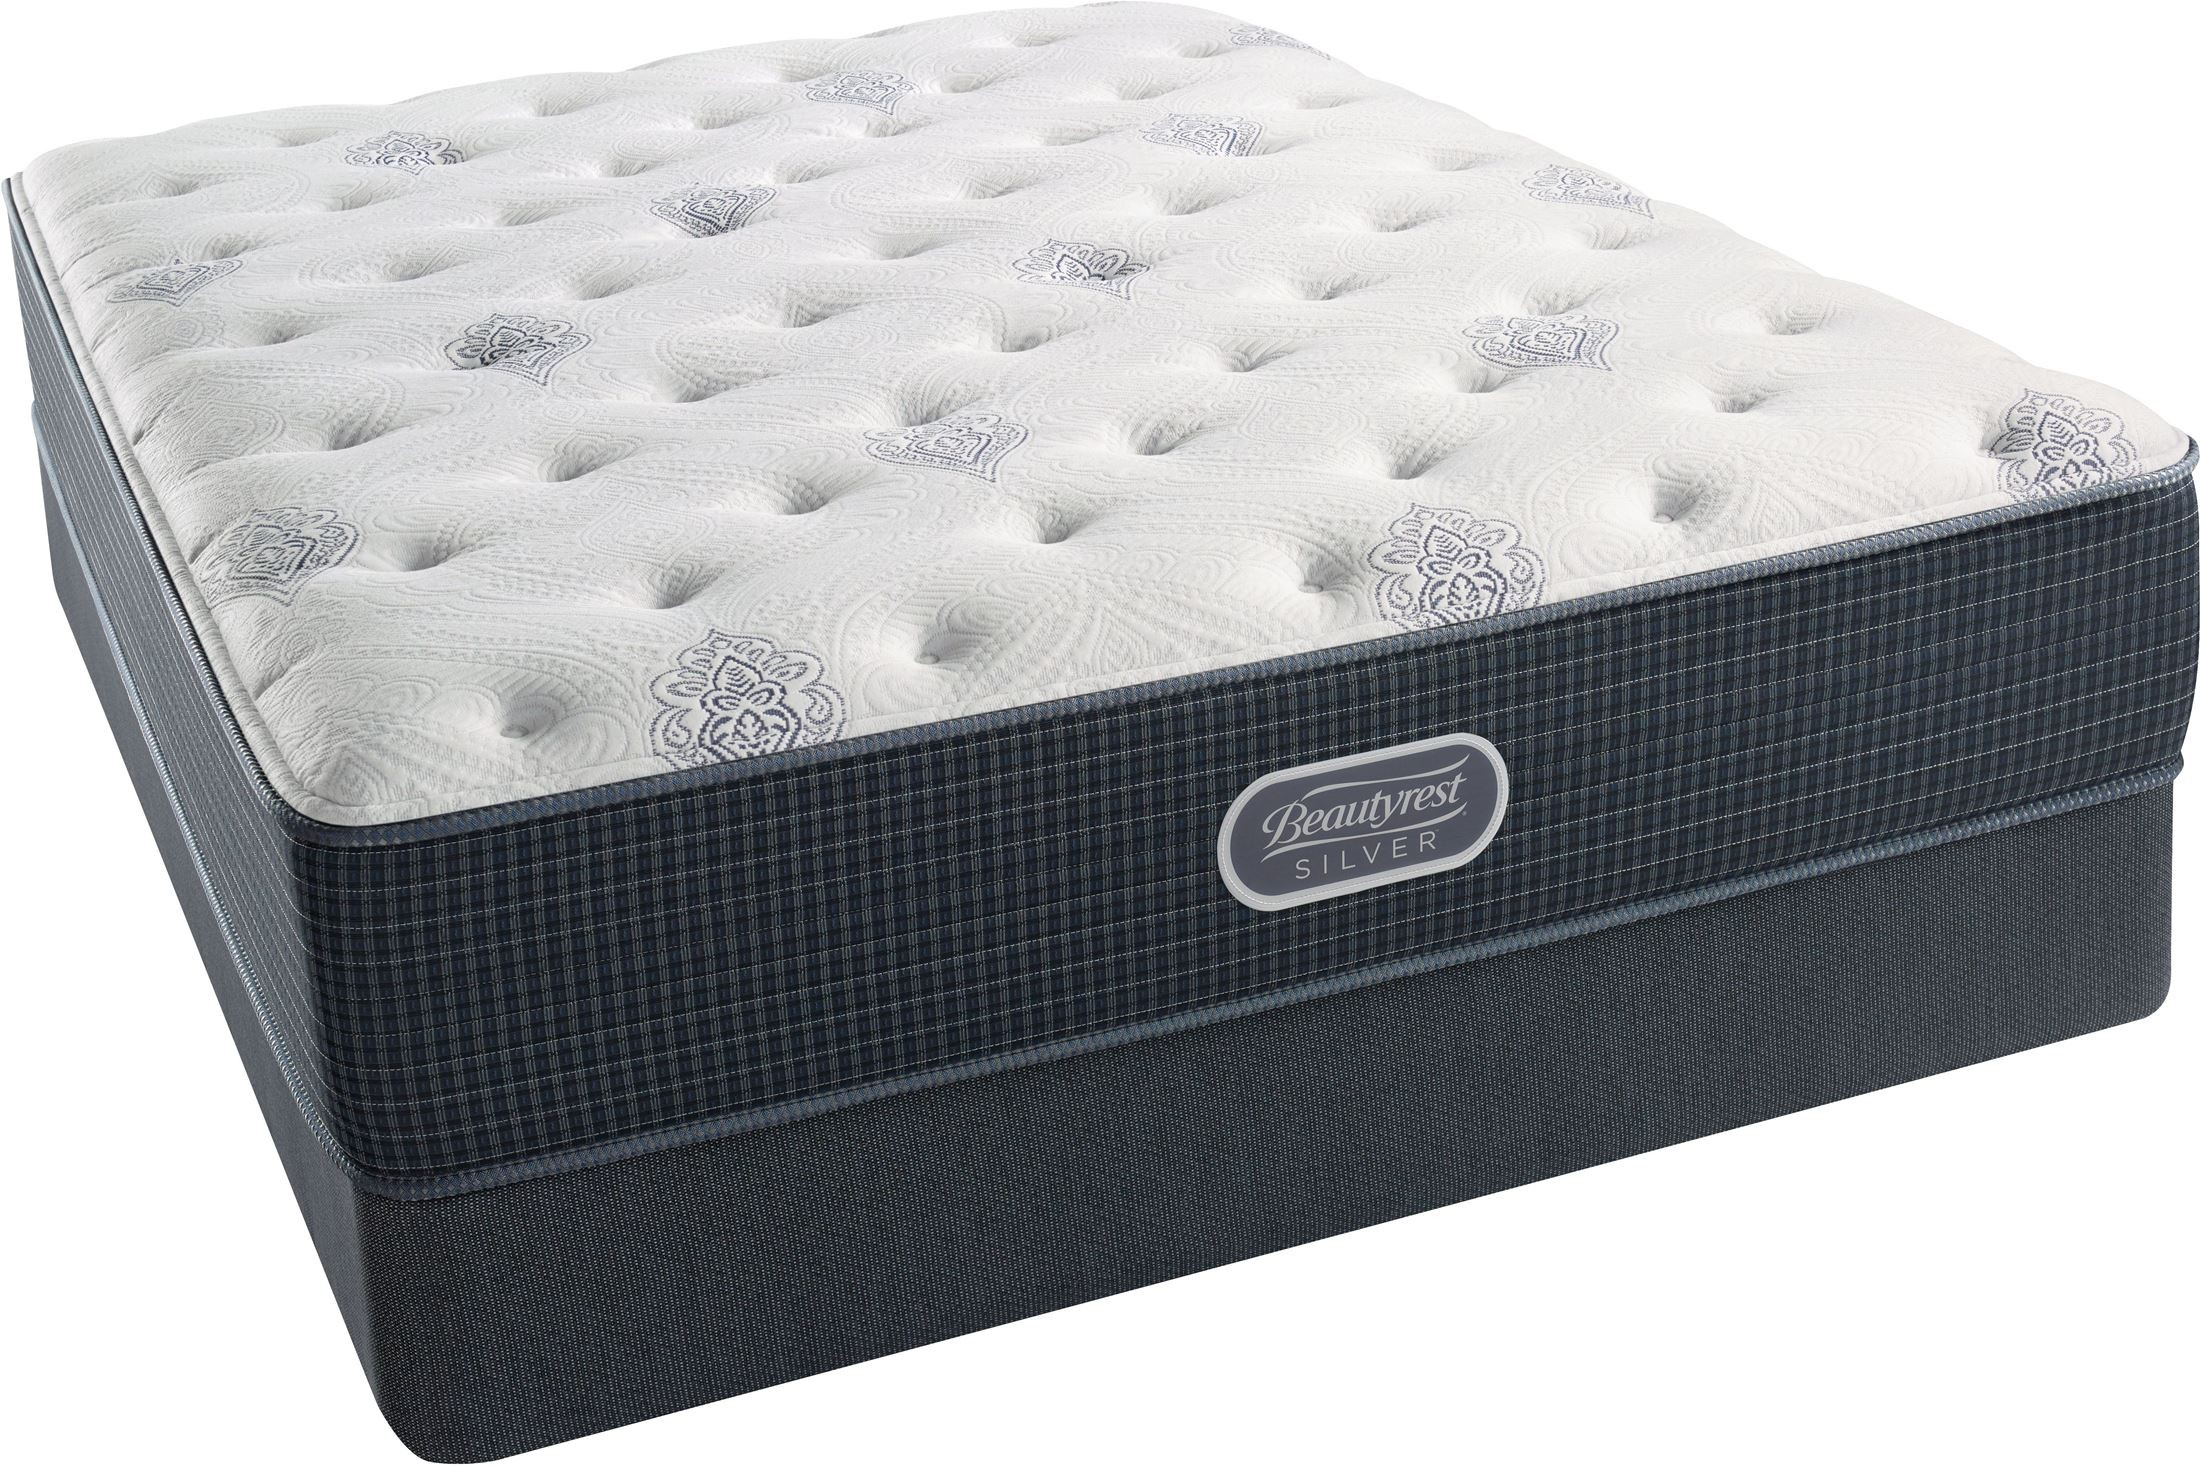 Beautyrest Recharge Silver Offshore Mist Tight Top Luxury Firm King Size Mattress With